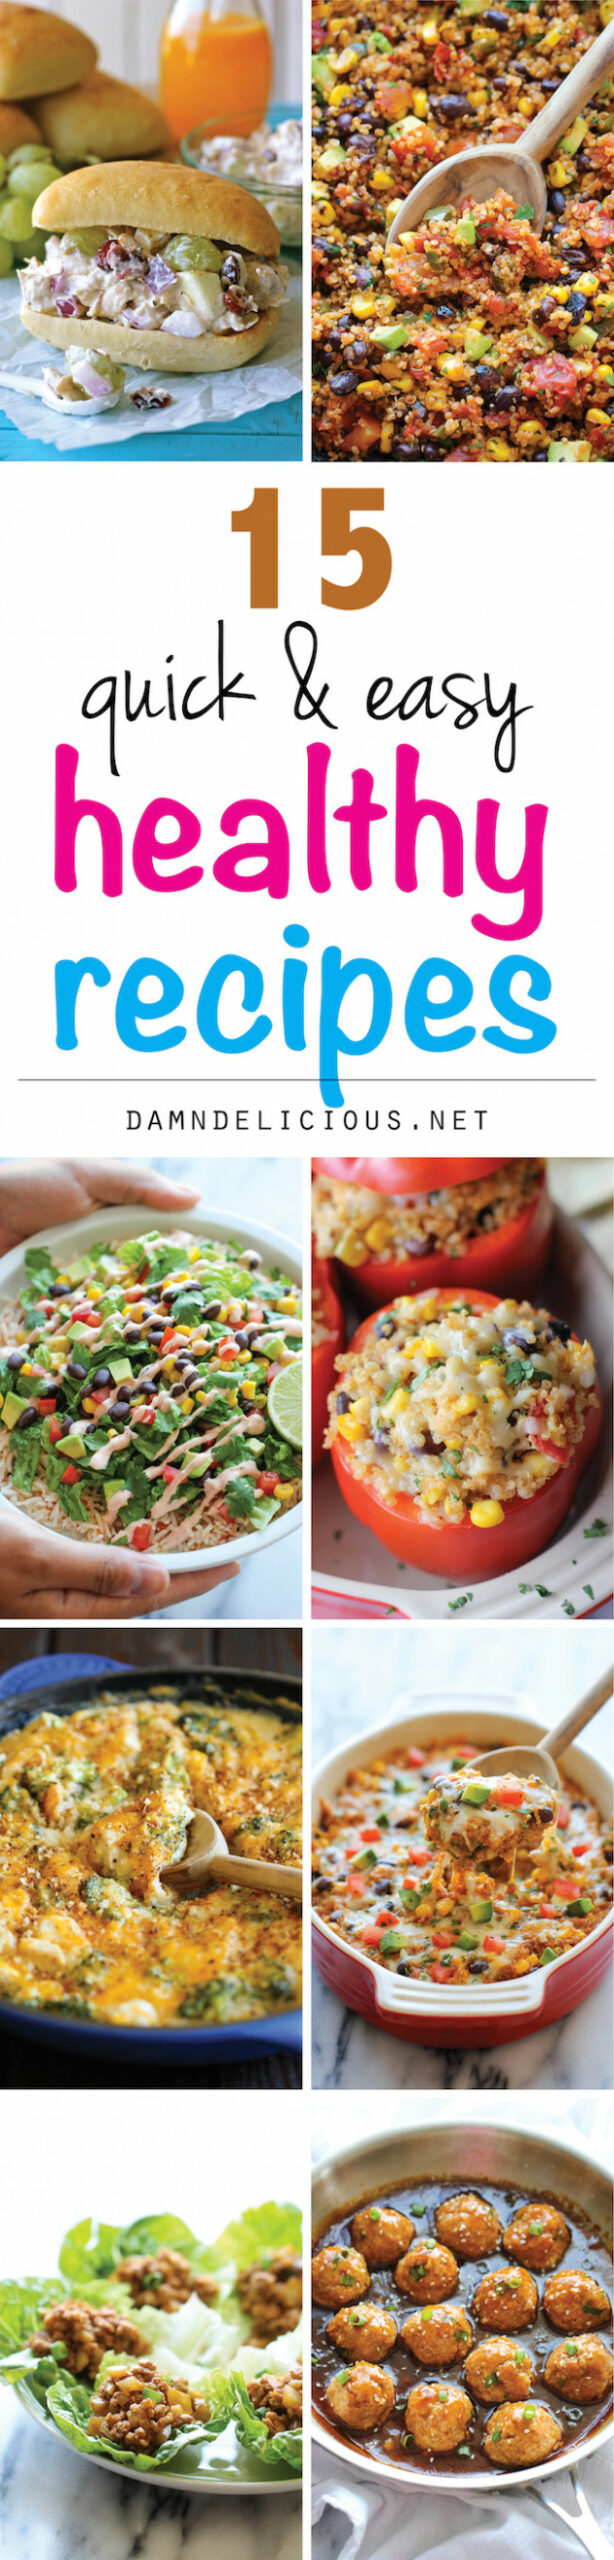 13 Quick and Easy Healthy Recipes - Damn Delicious - quick and easy healthy dinner recipes